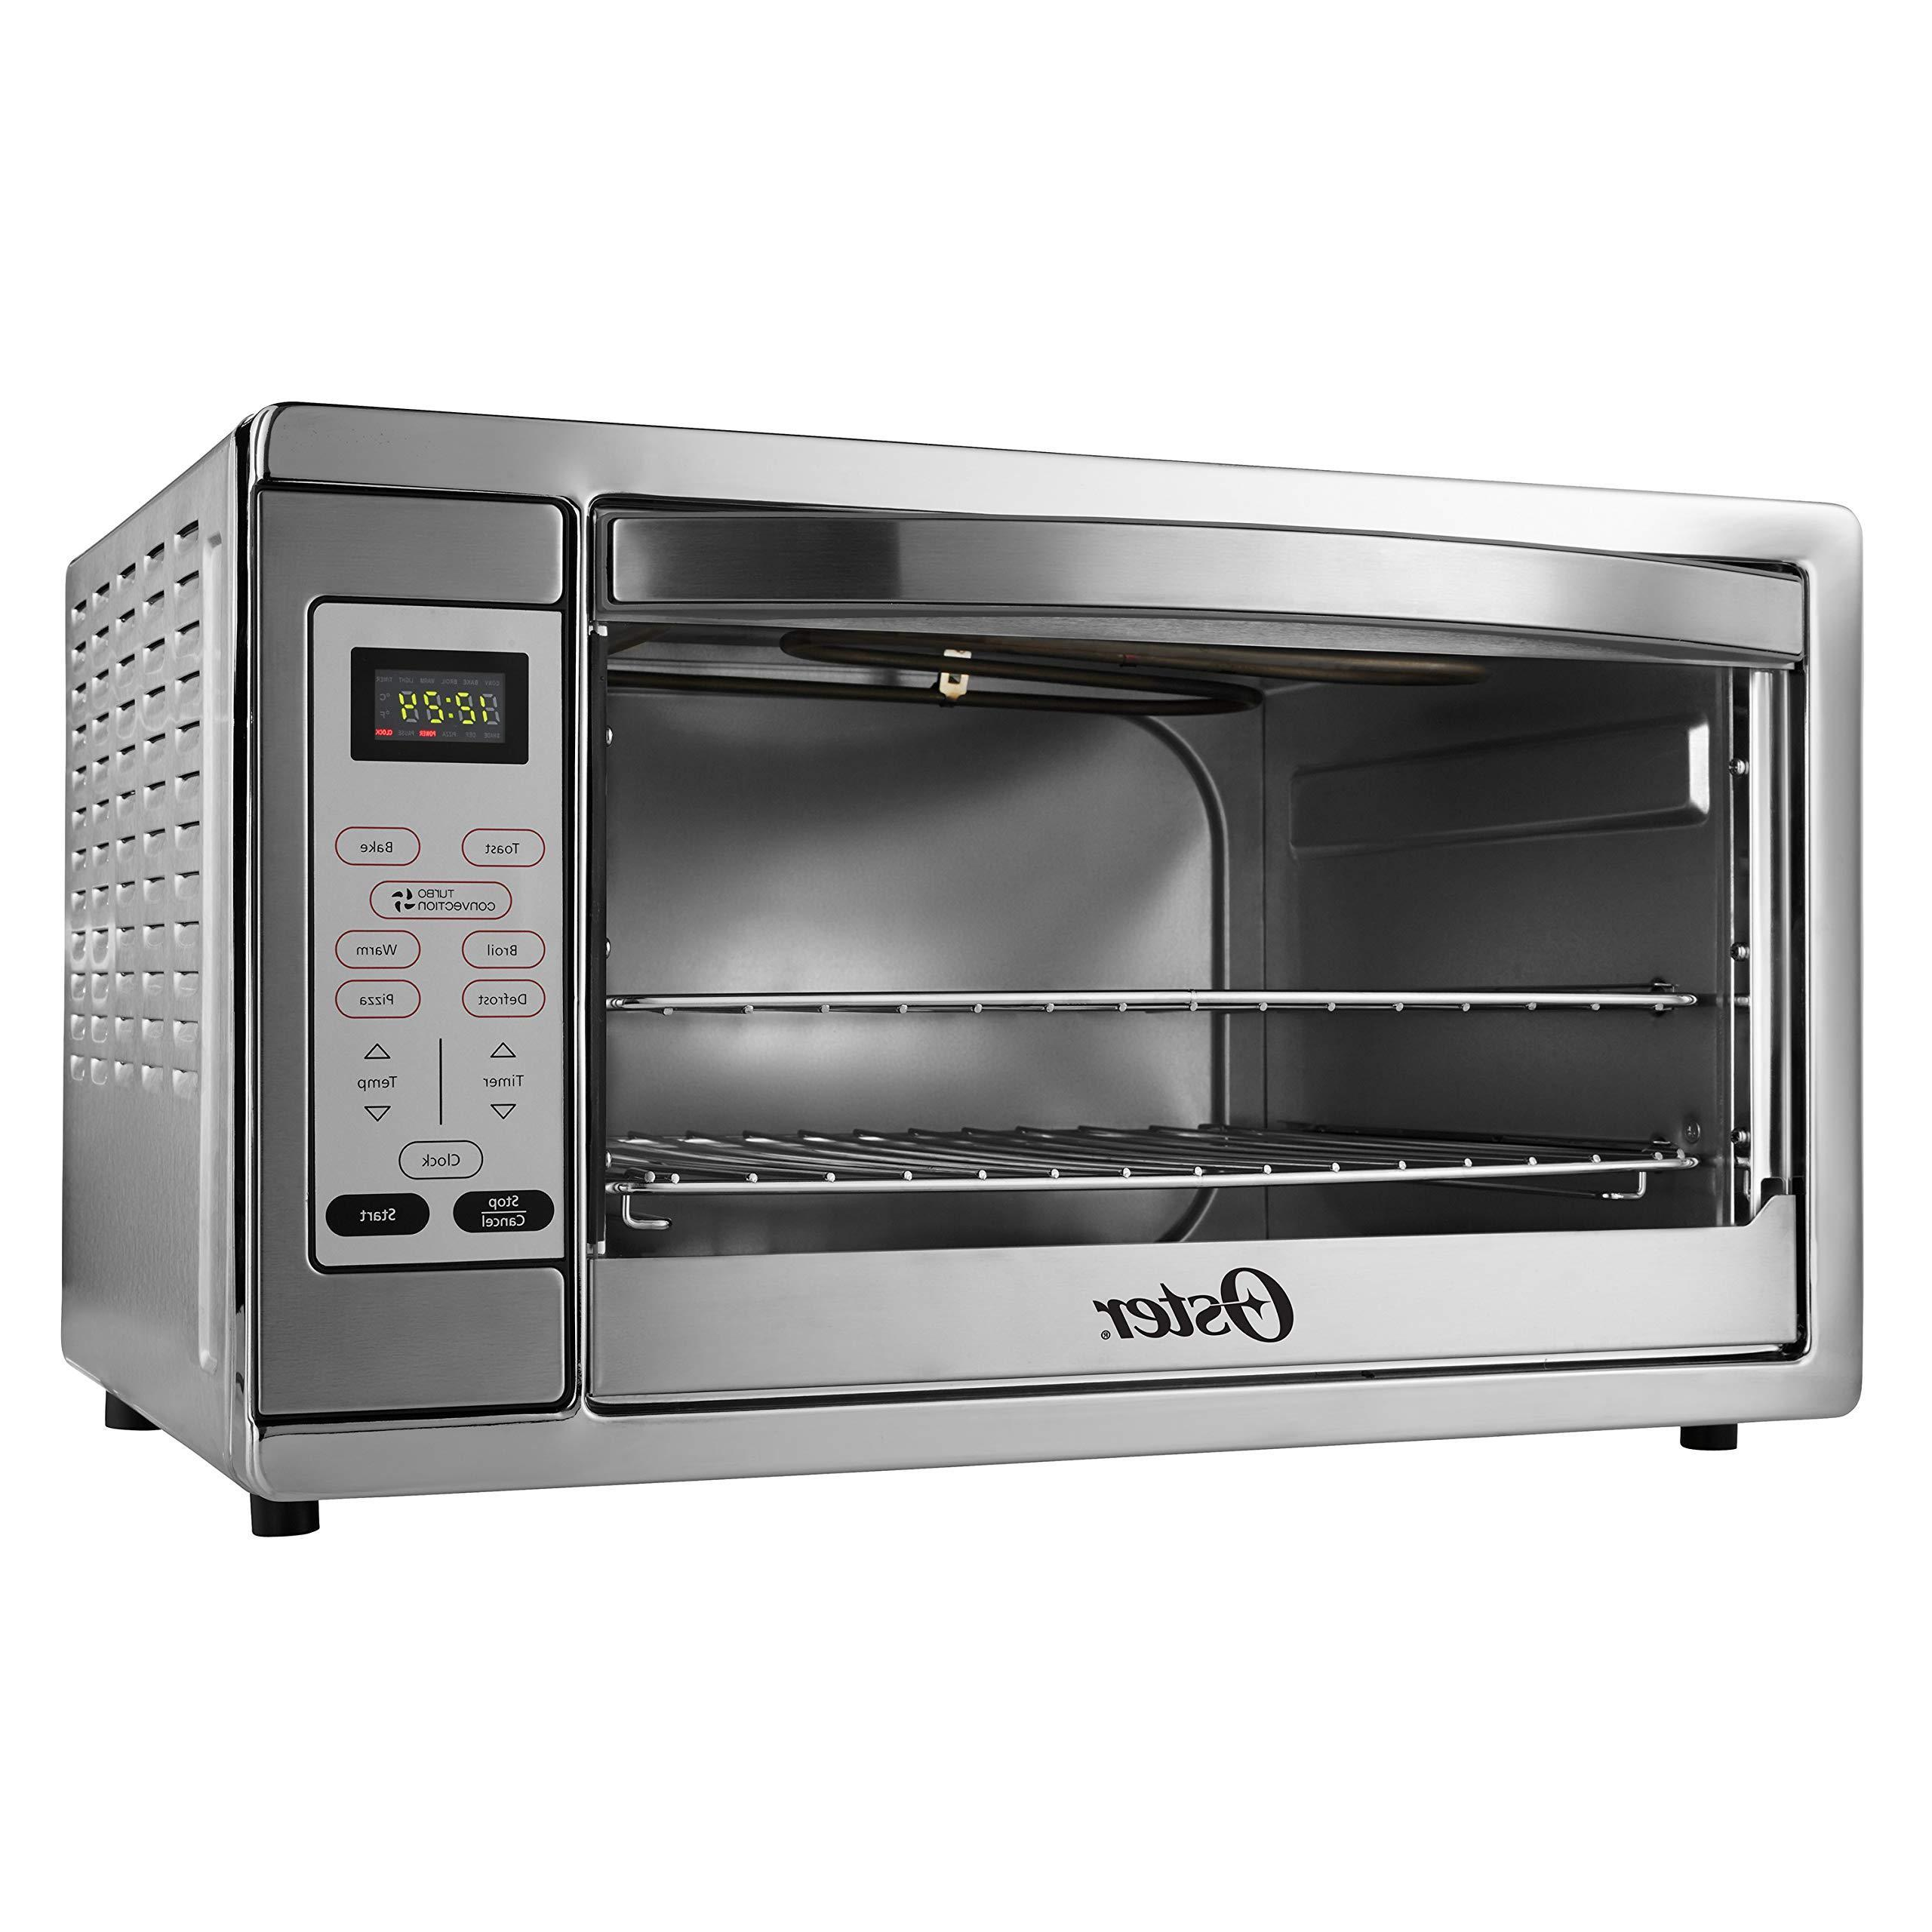 extra large digital countertop convection oven stainless